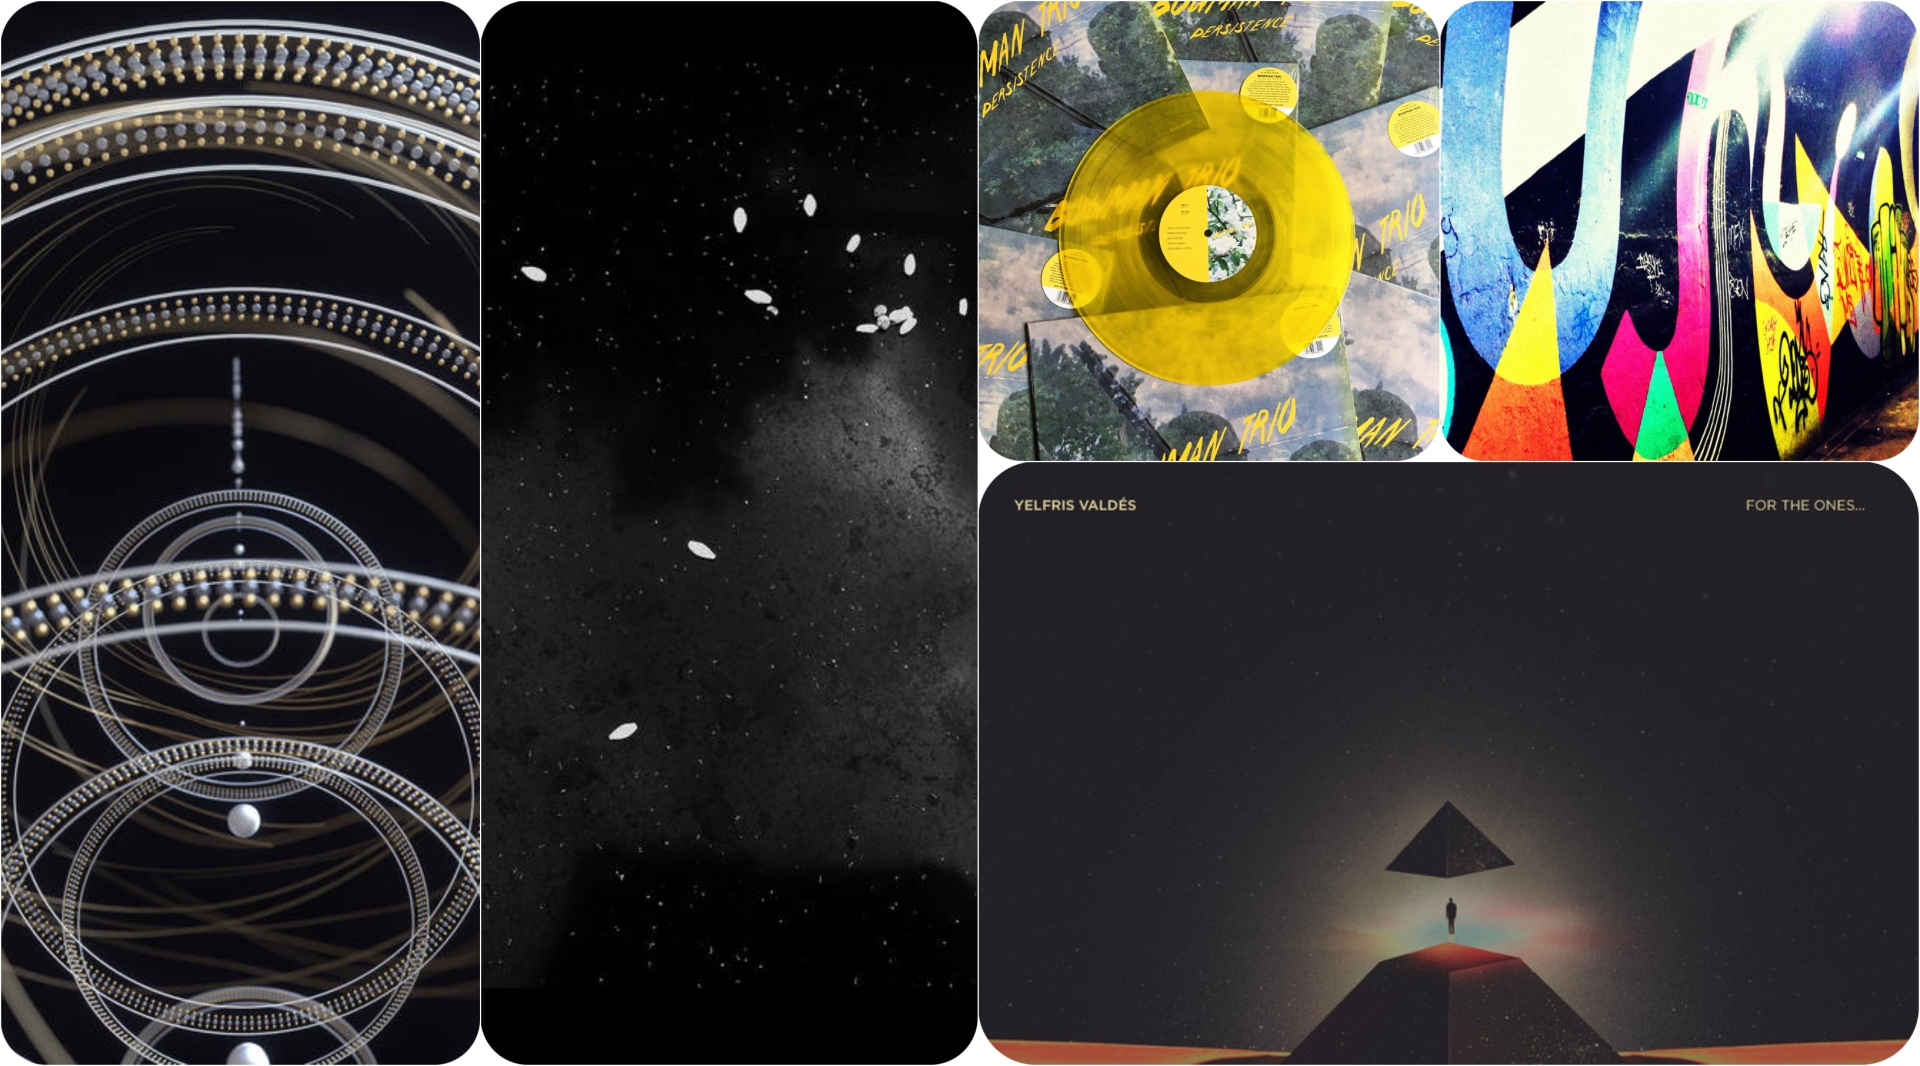 Five new records that we believe require your full attention.